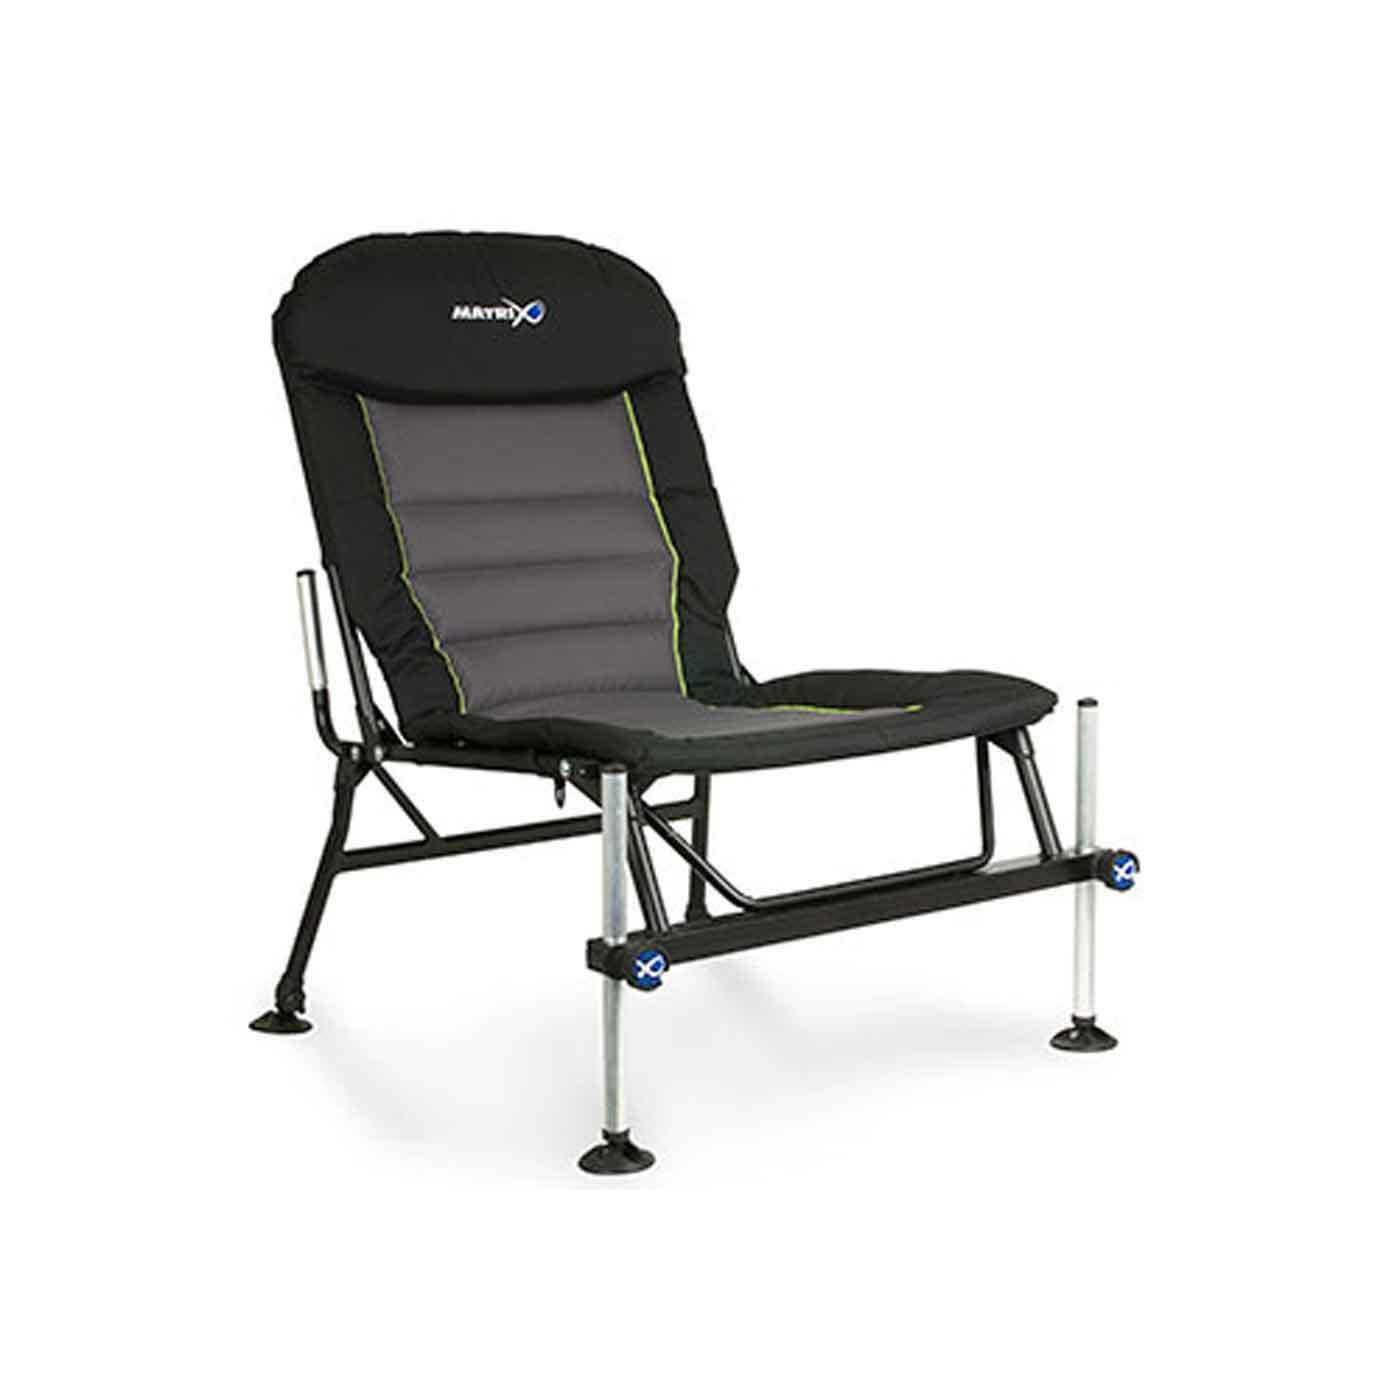 Matrix Ethos Deluxe Accessory Chair Brand New 2017 - Free Delivery